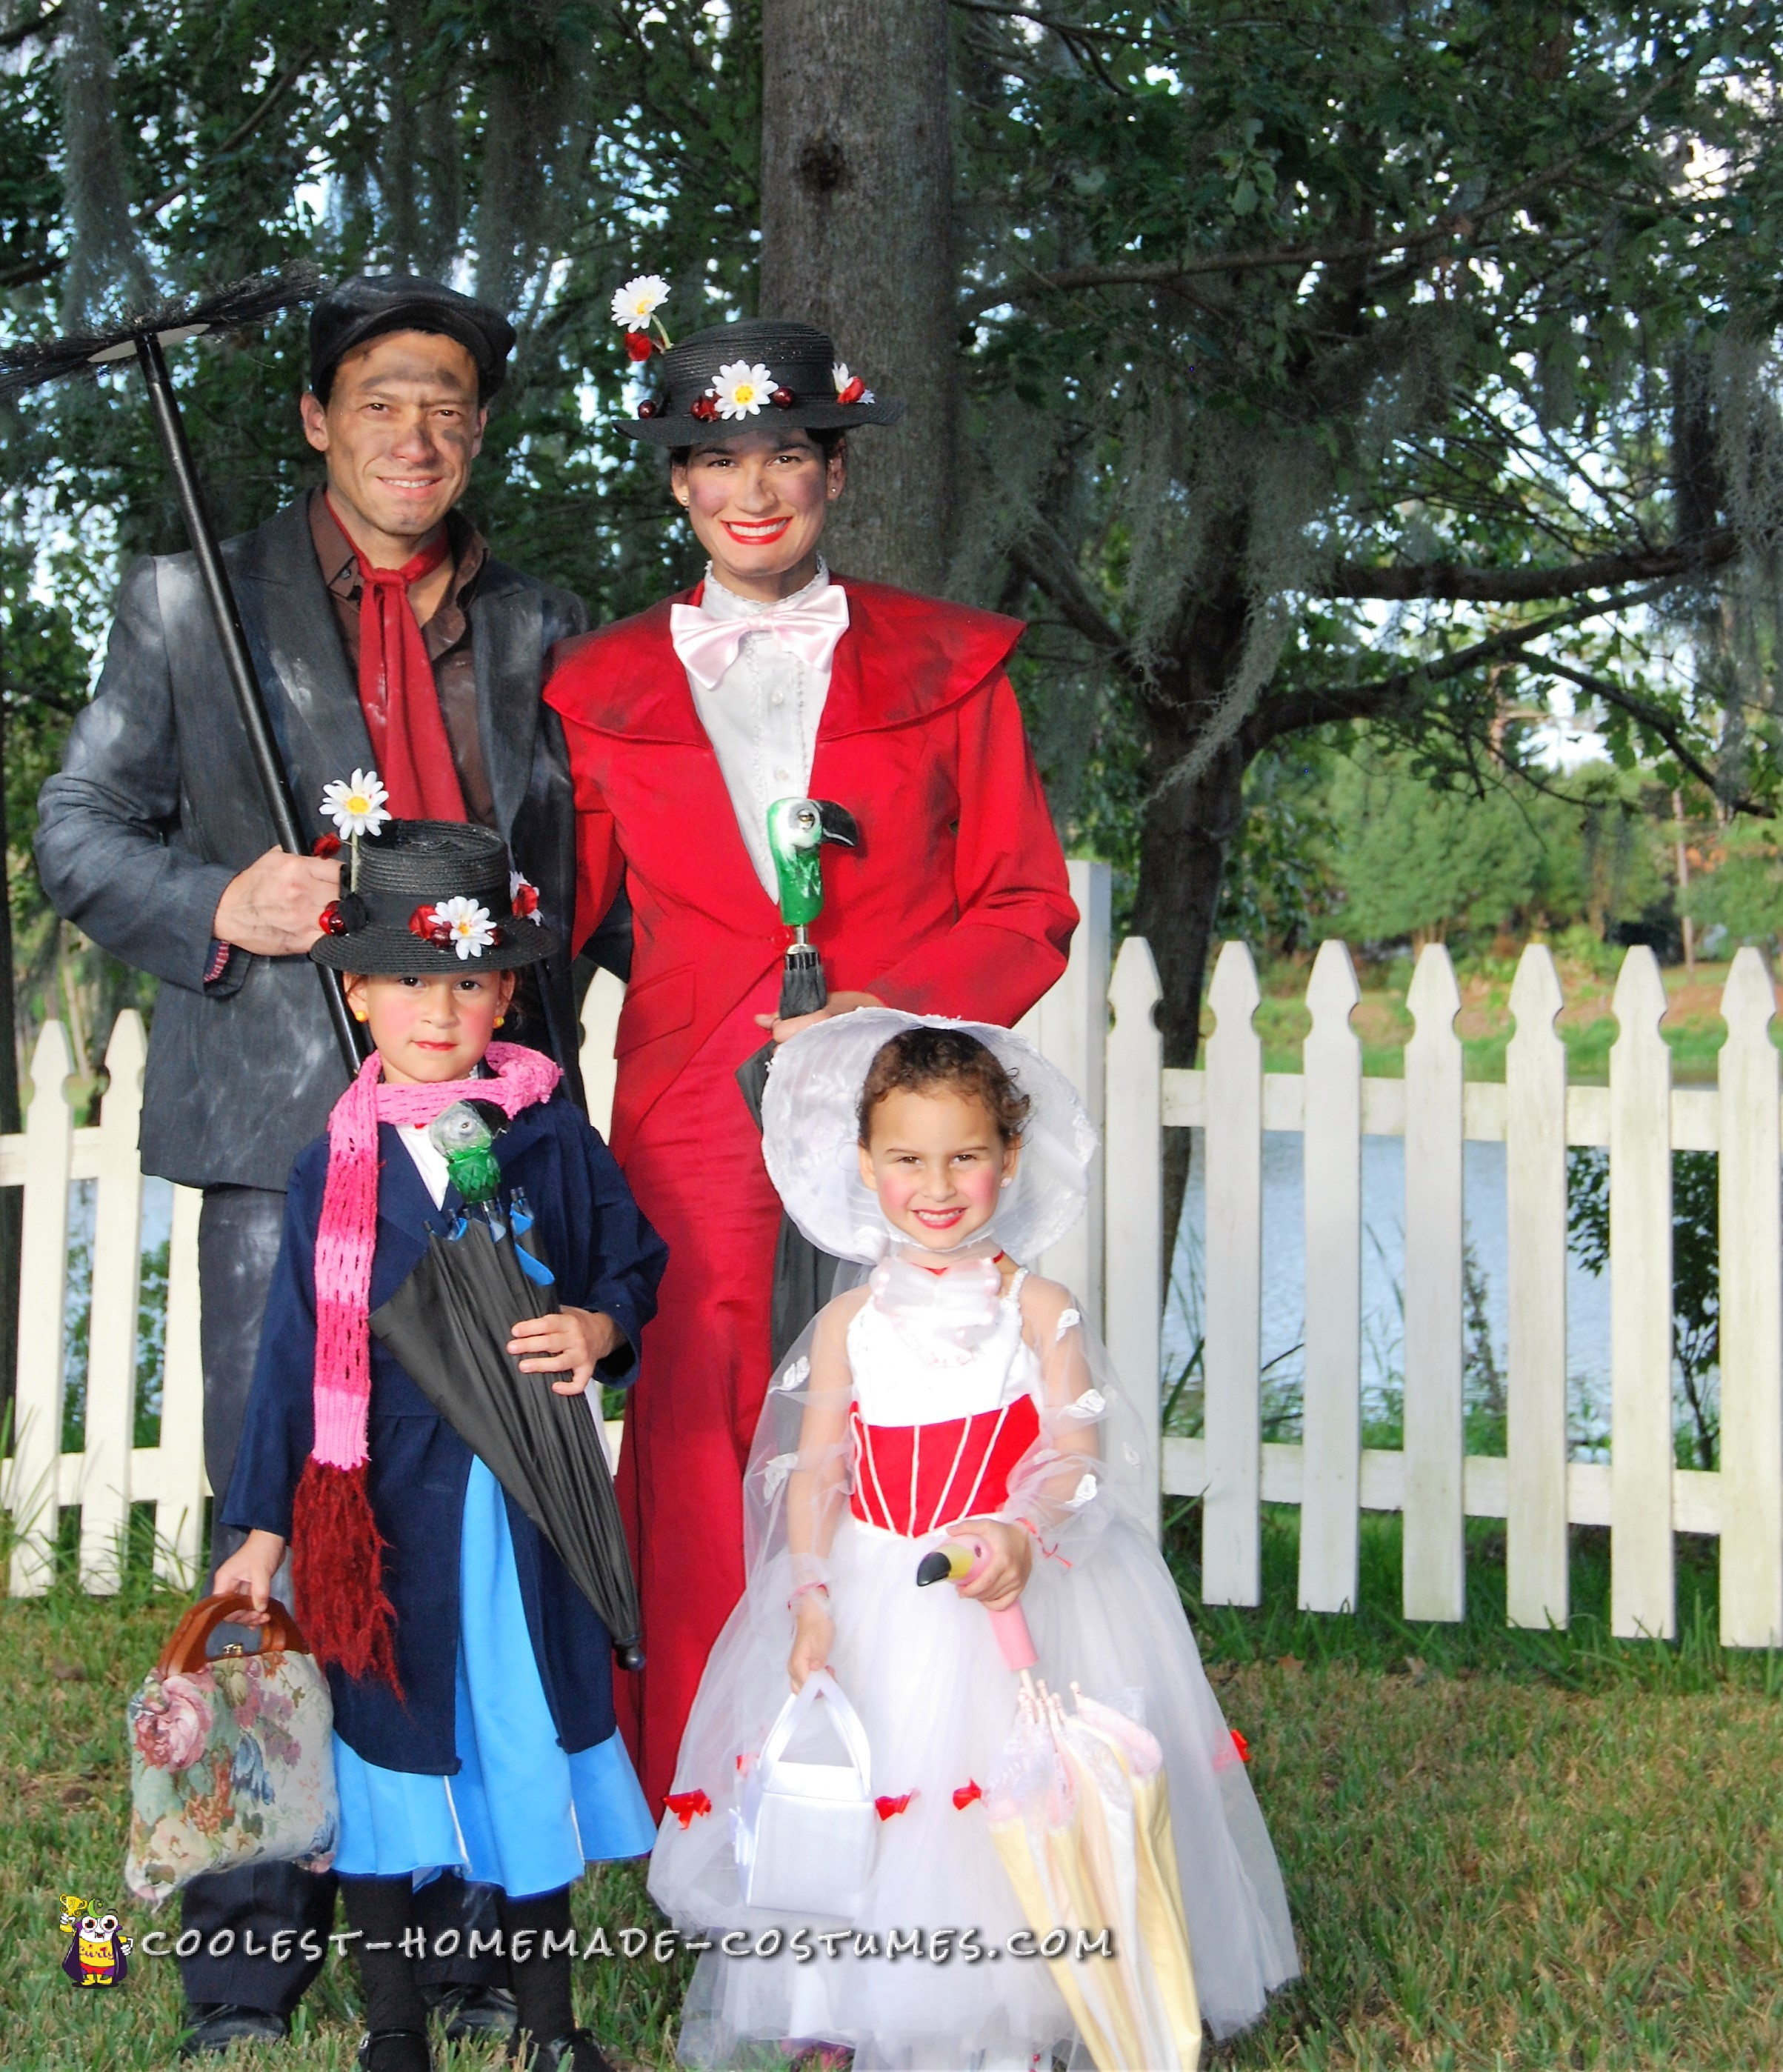 The Phases of Mary Poppins - A Family Costume